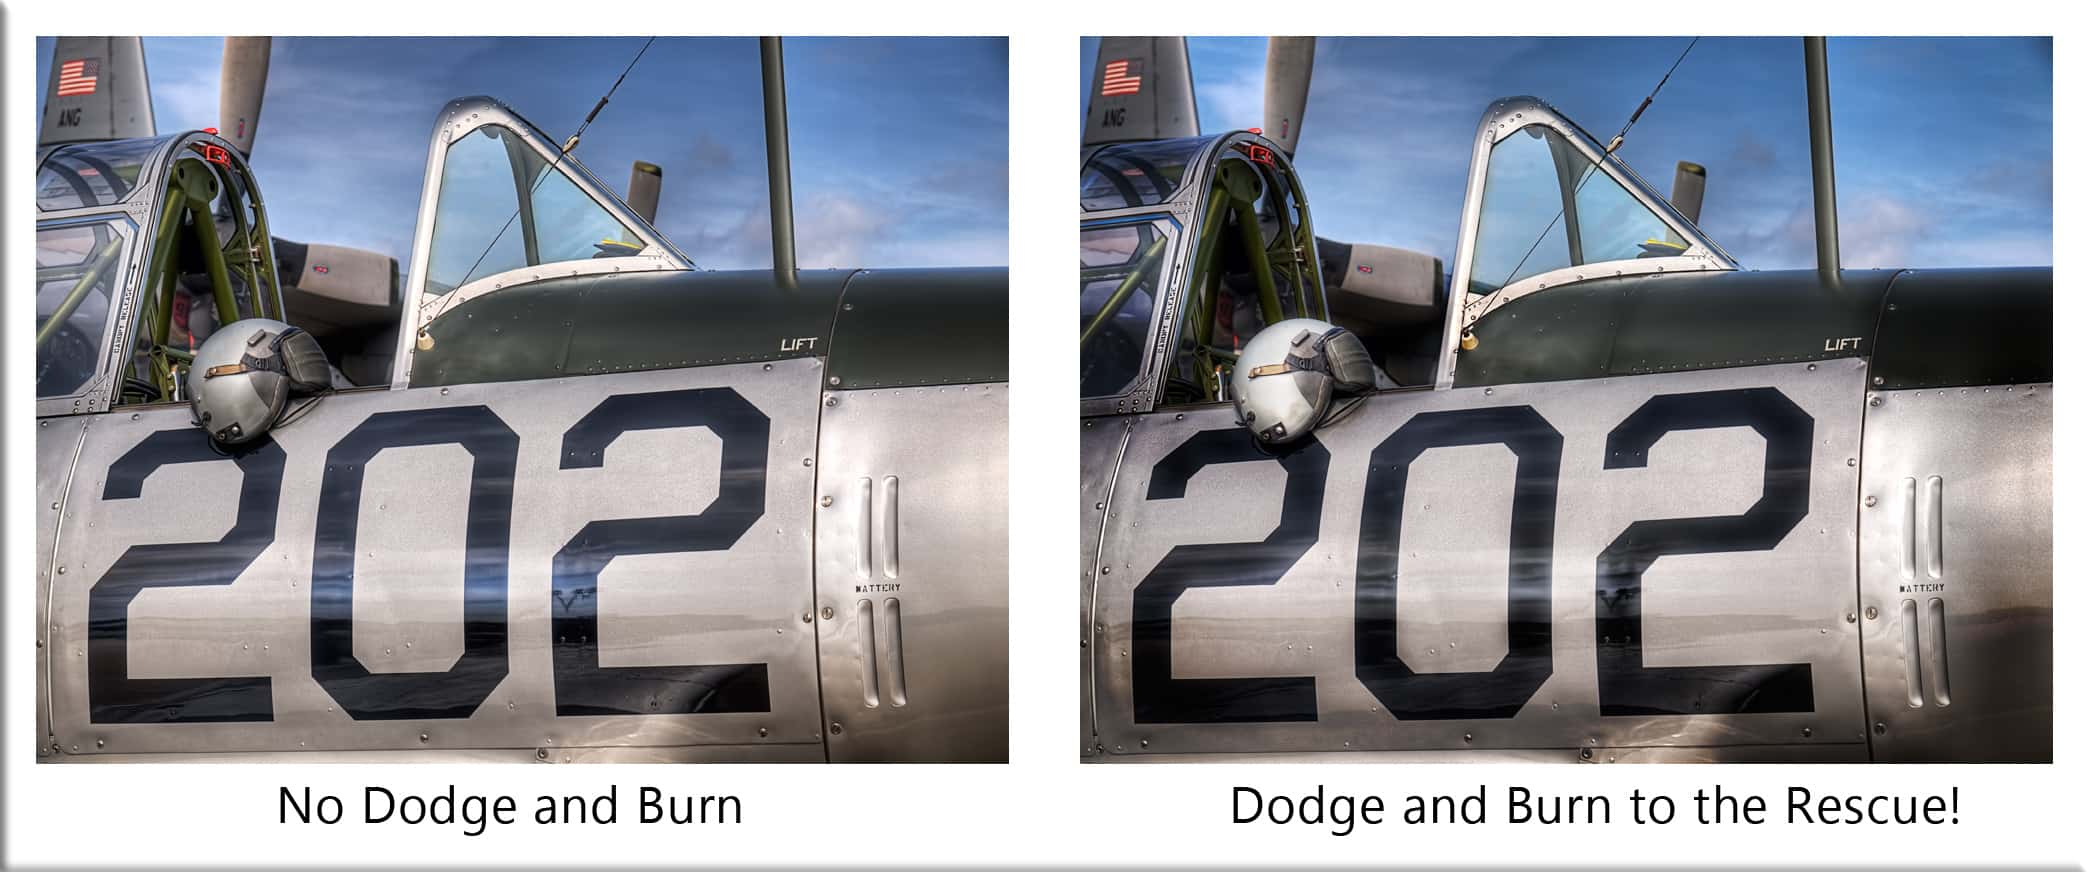 Dodging and Burning With a Purpose: Photoshop CS5